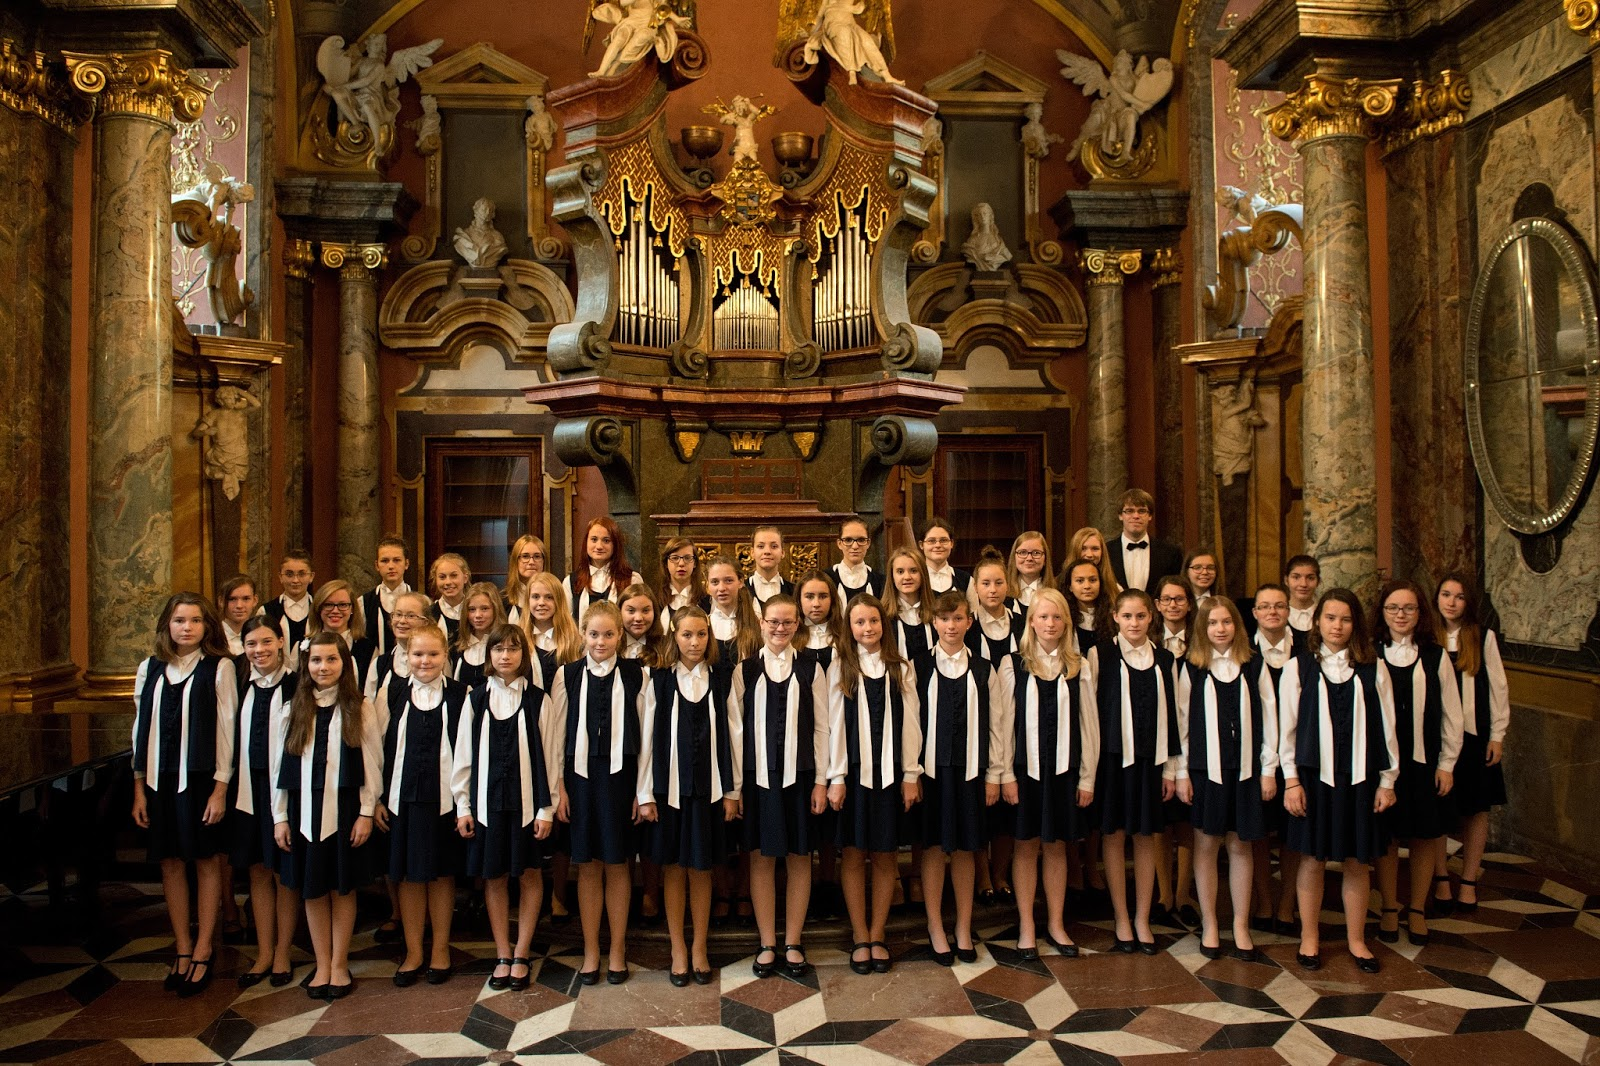 Preveza International Choral Festival: Choir's participation